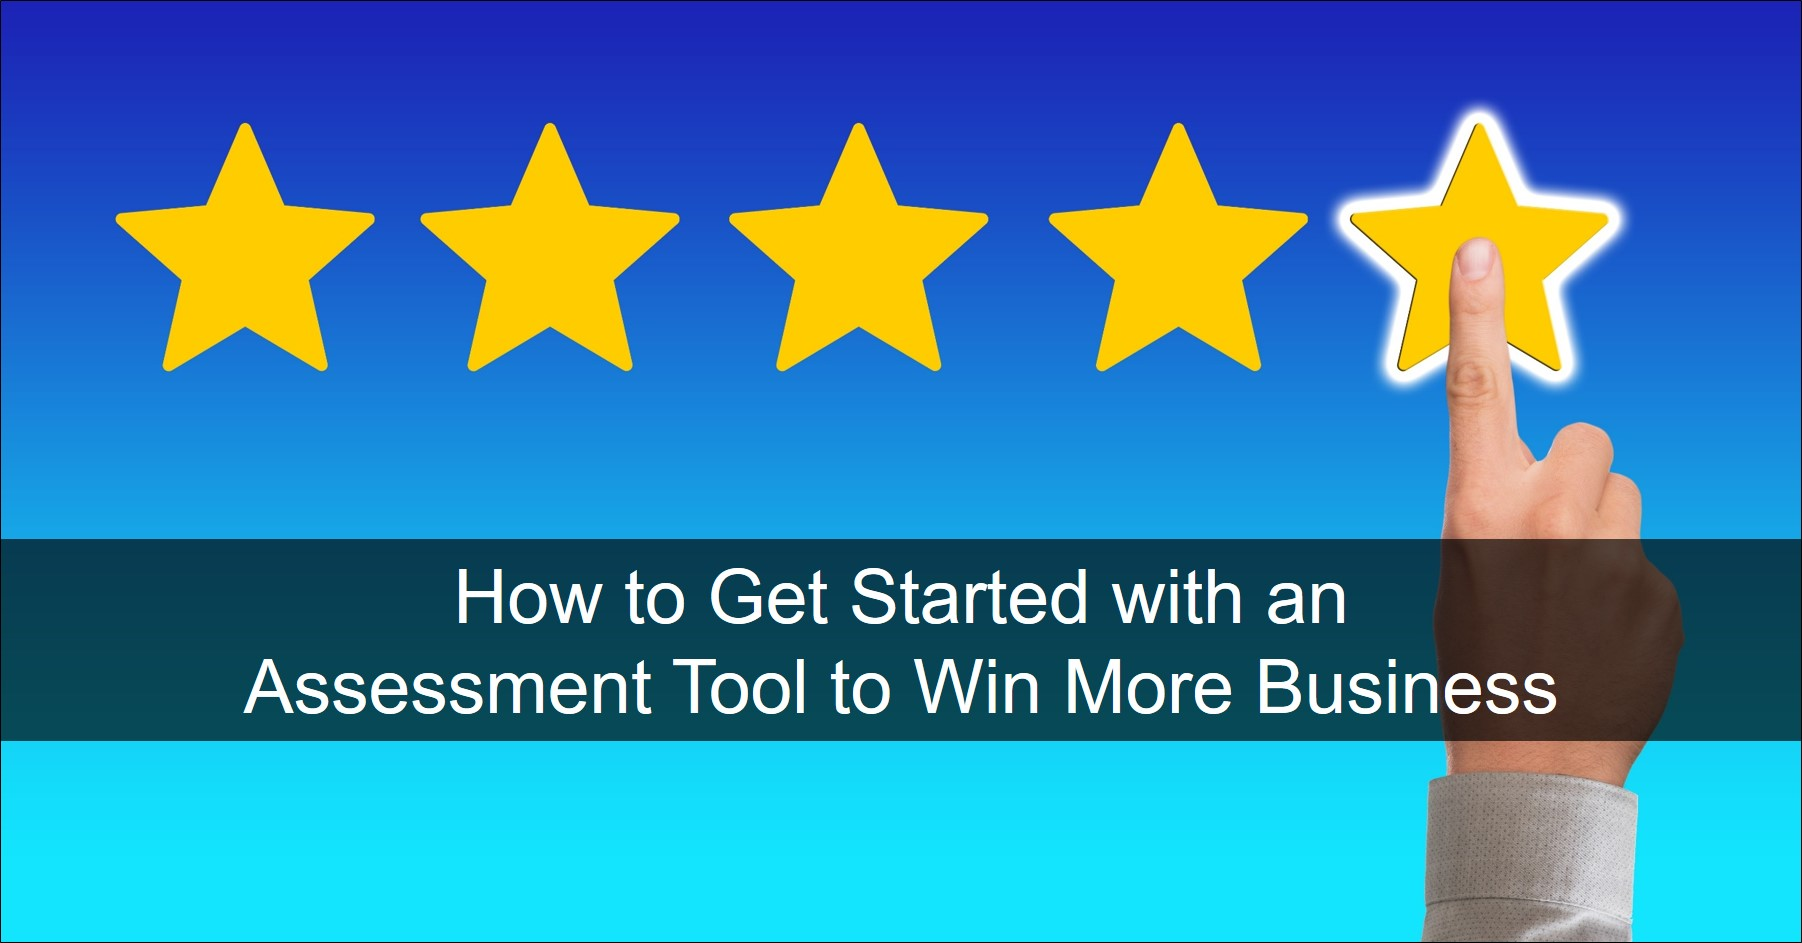 Get going with an assessment tool to grow sales